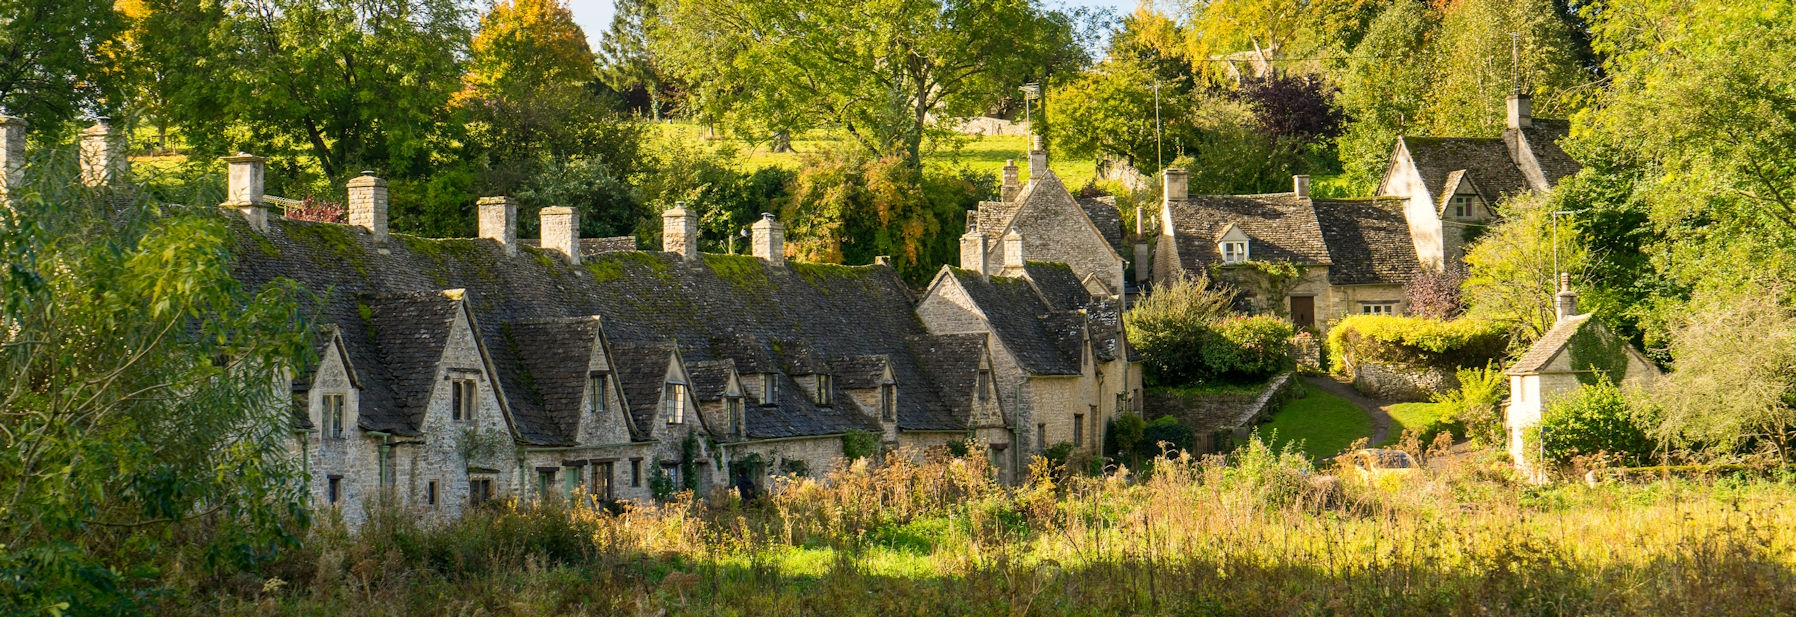 cotswold-travel-planner-cotswolds-concierge-4.jpeg